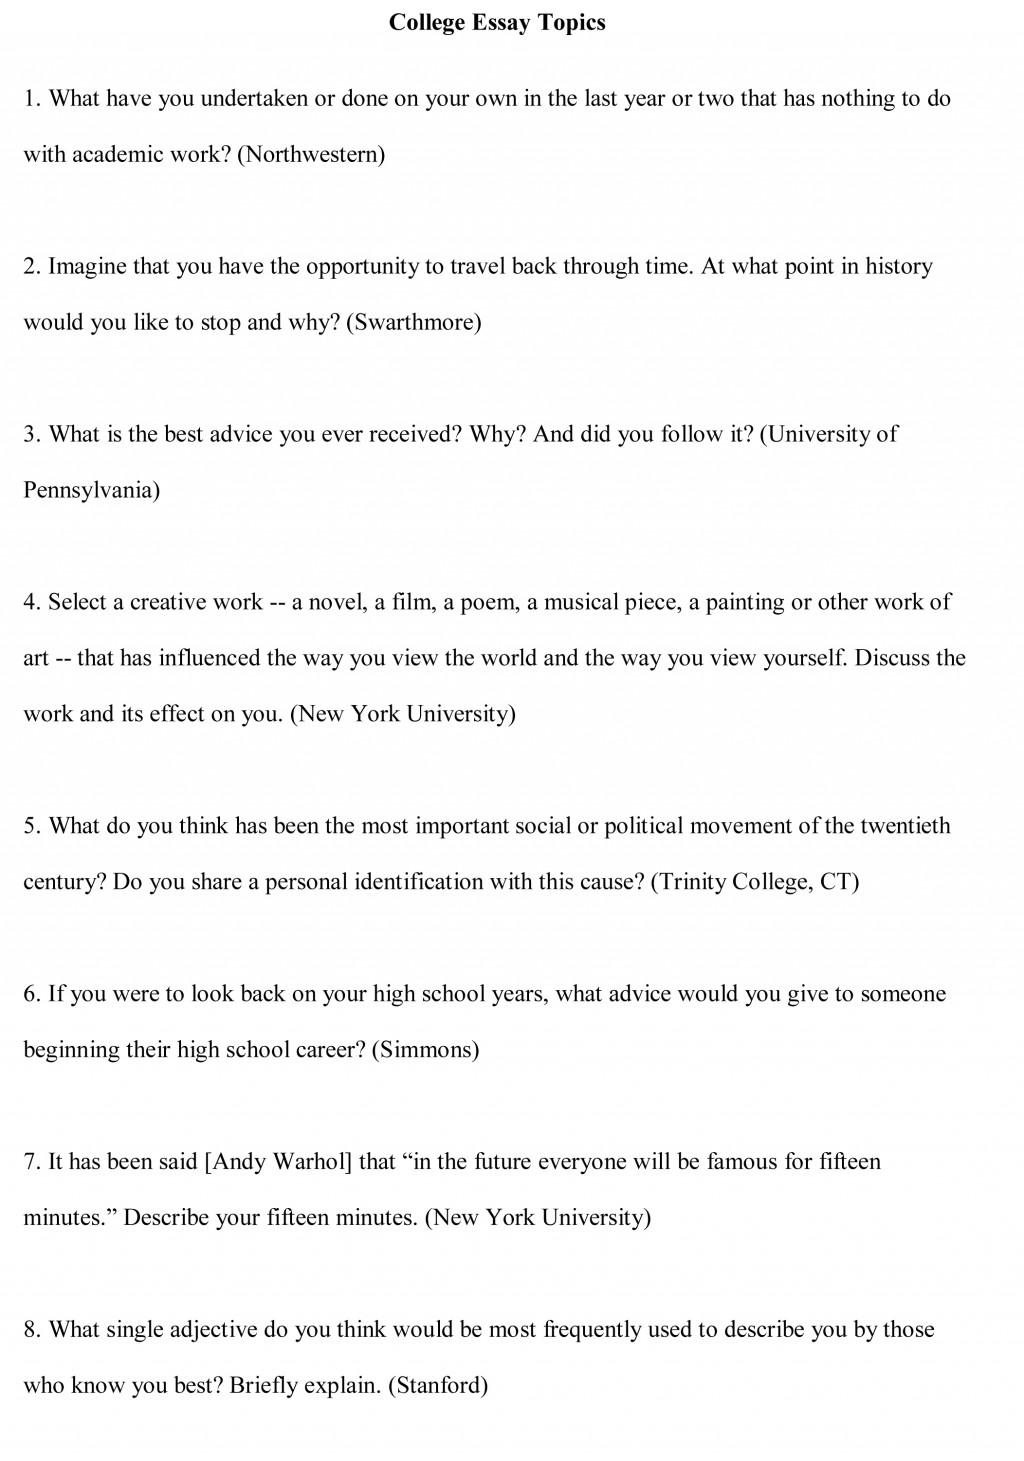 008 Essay Example College Topics Free Sample1 How To Excellent Essays Write An Expository For 4th Grade Make Longer With Words Start Introduction Large